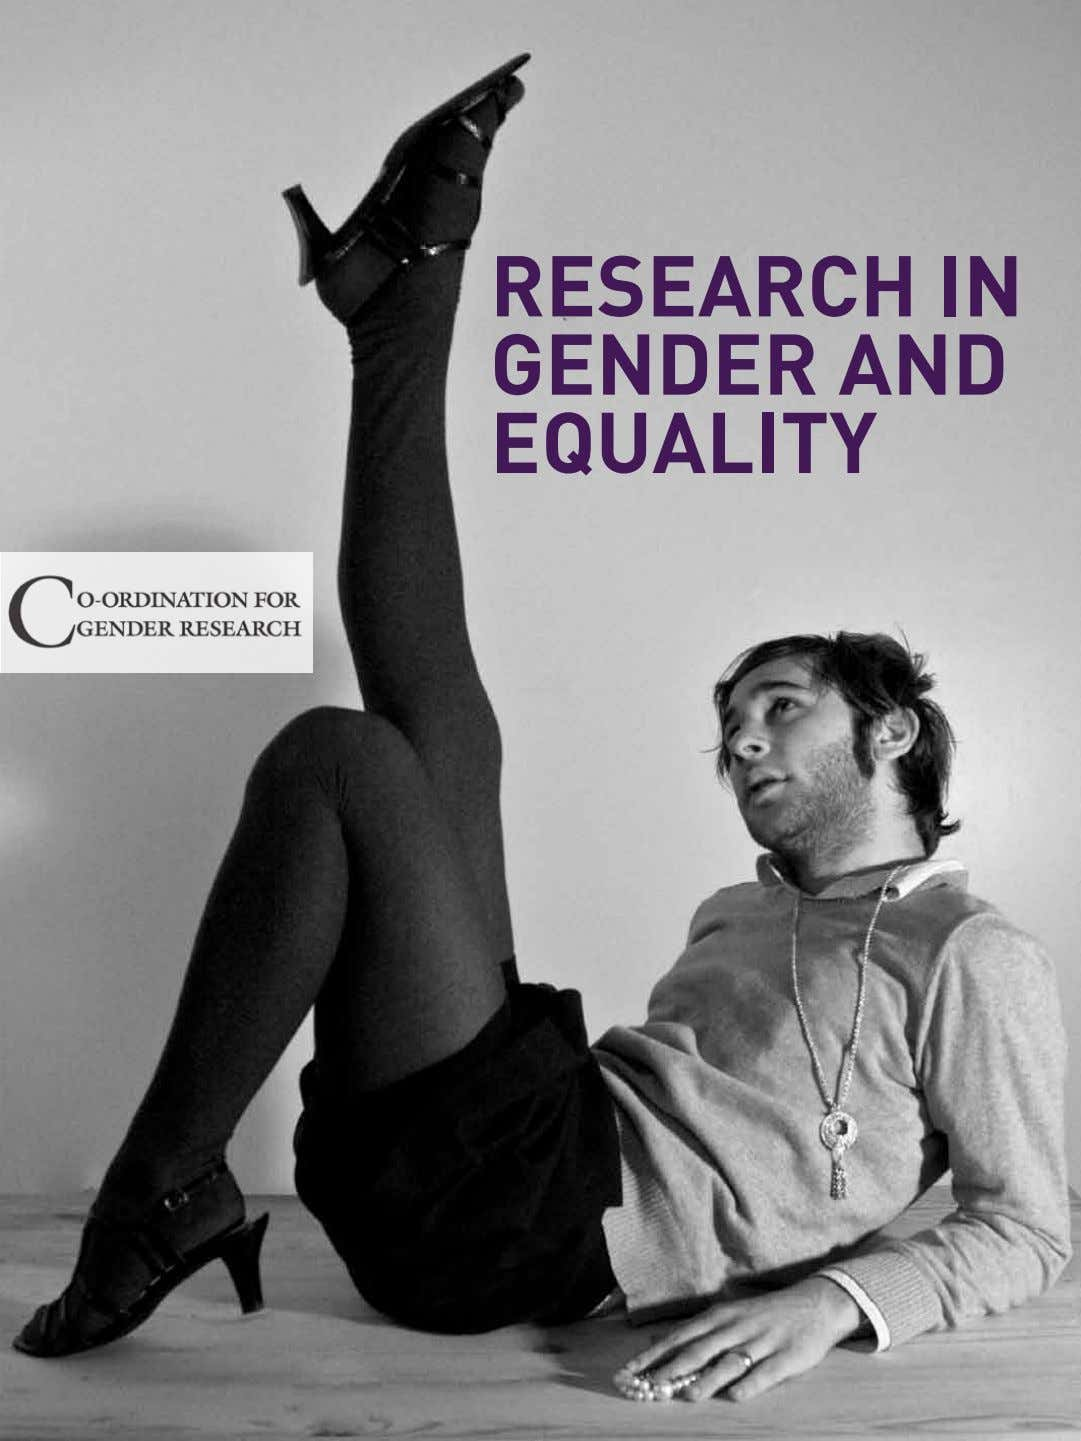 research in gender and equality